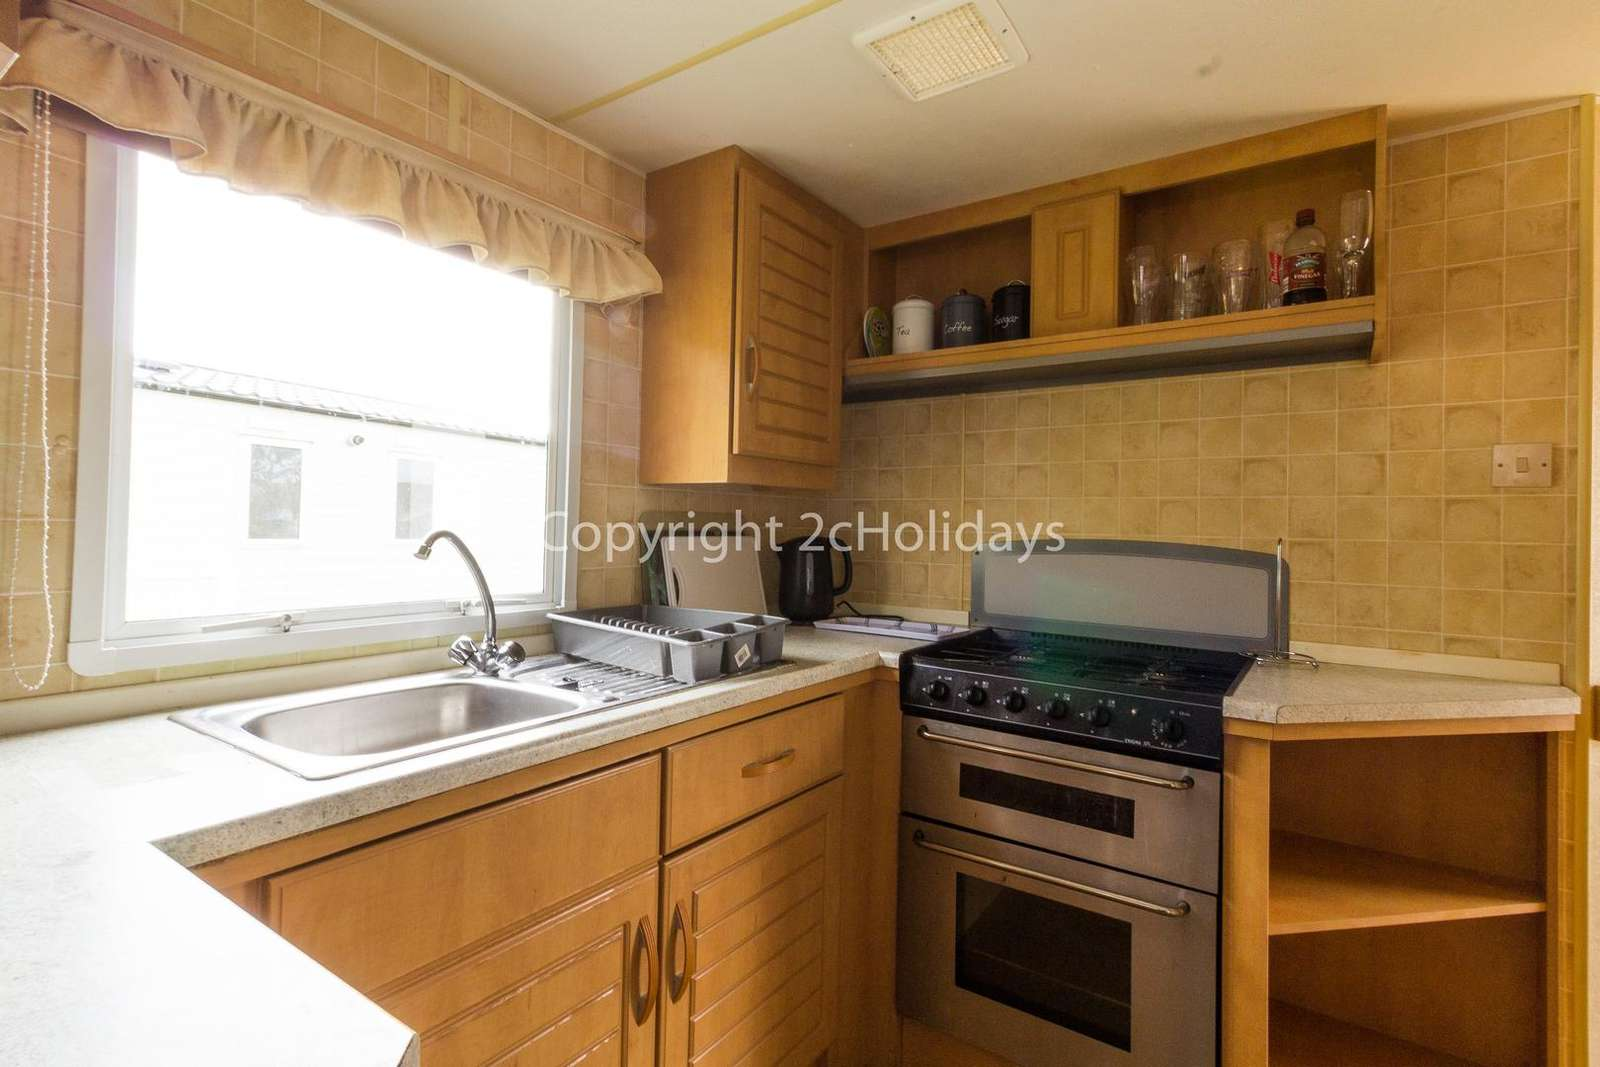 Full size cooker perfect for self-catering holidays!